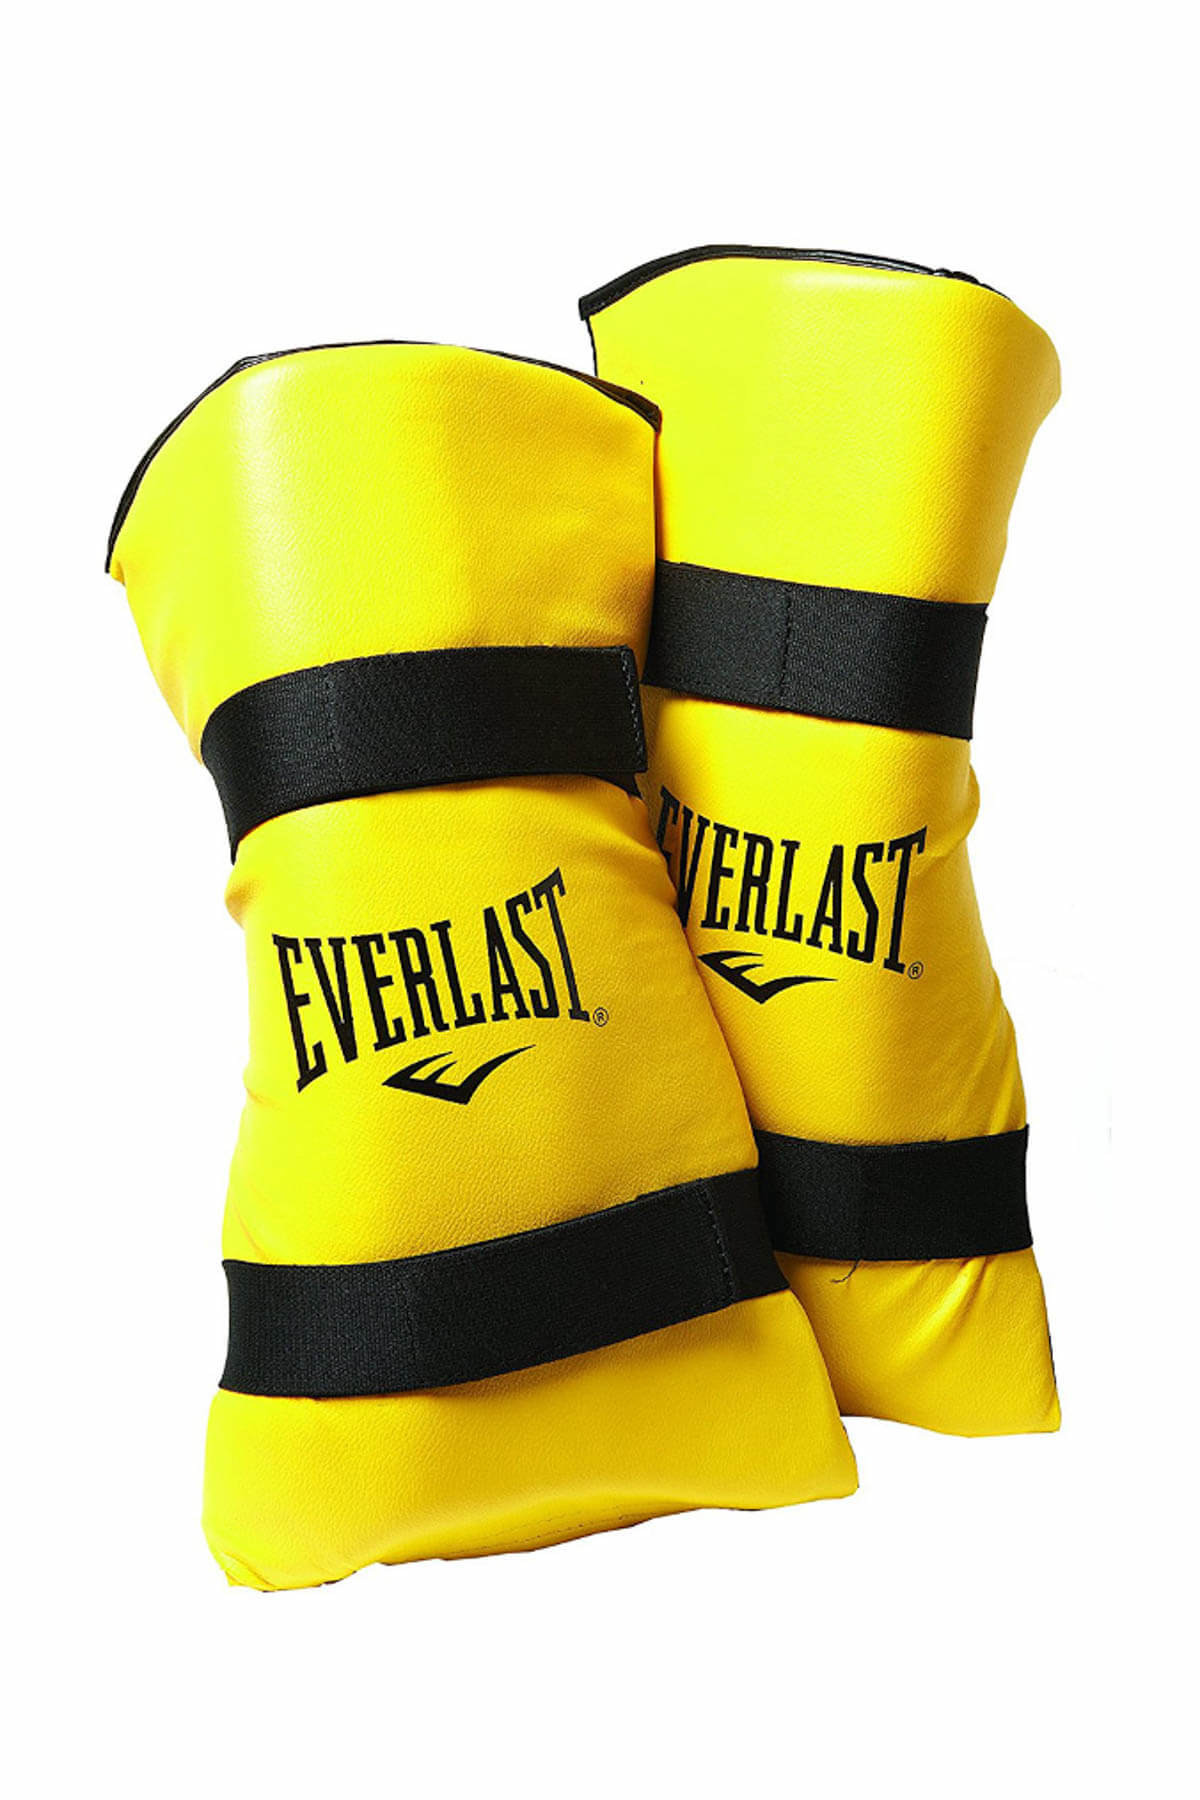 Everlast Everlast 7250 Shin And In Step Guard